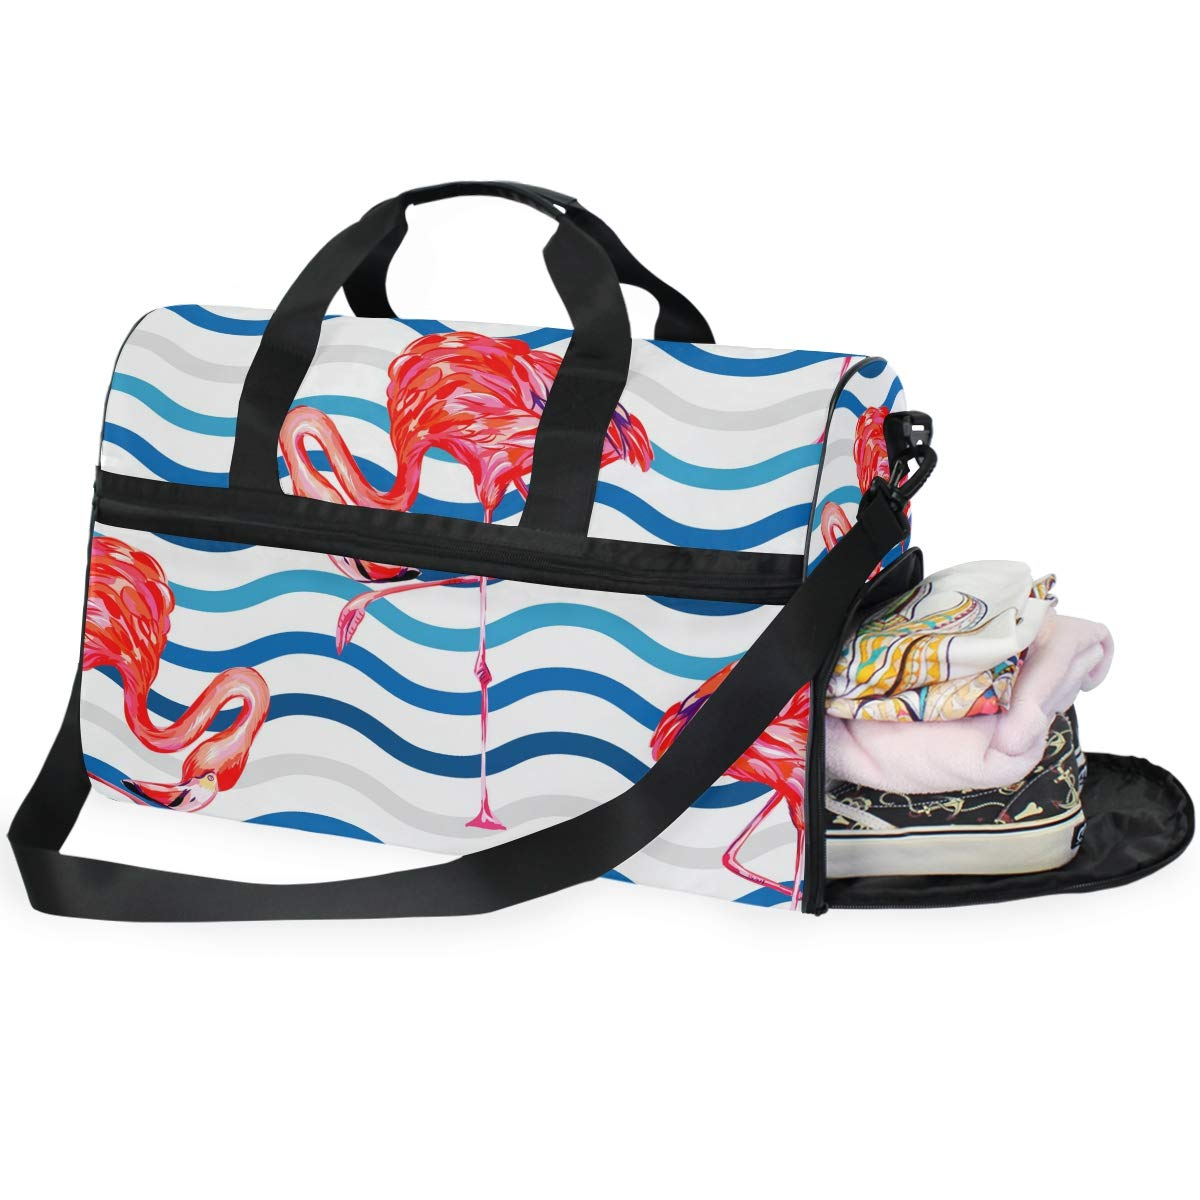 FAJRO Gym Bag Travel Duffel Express Weekender Bag Big Wave Flamingo Pattern Carry On Luggage with Shoe Pouch